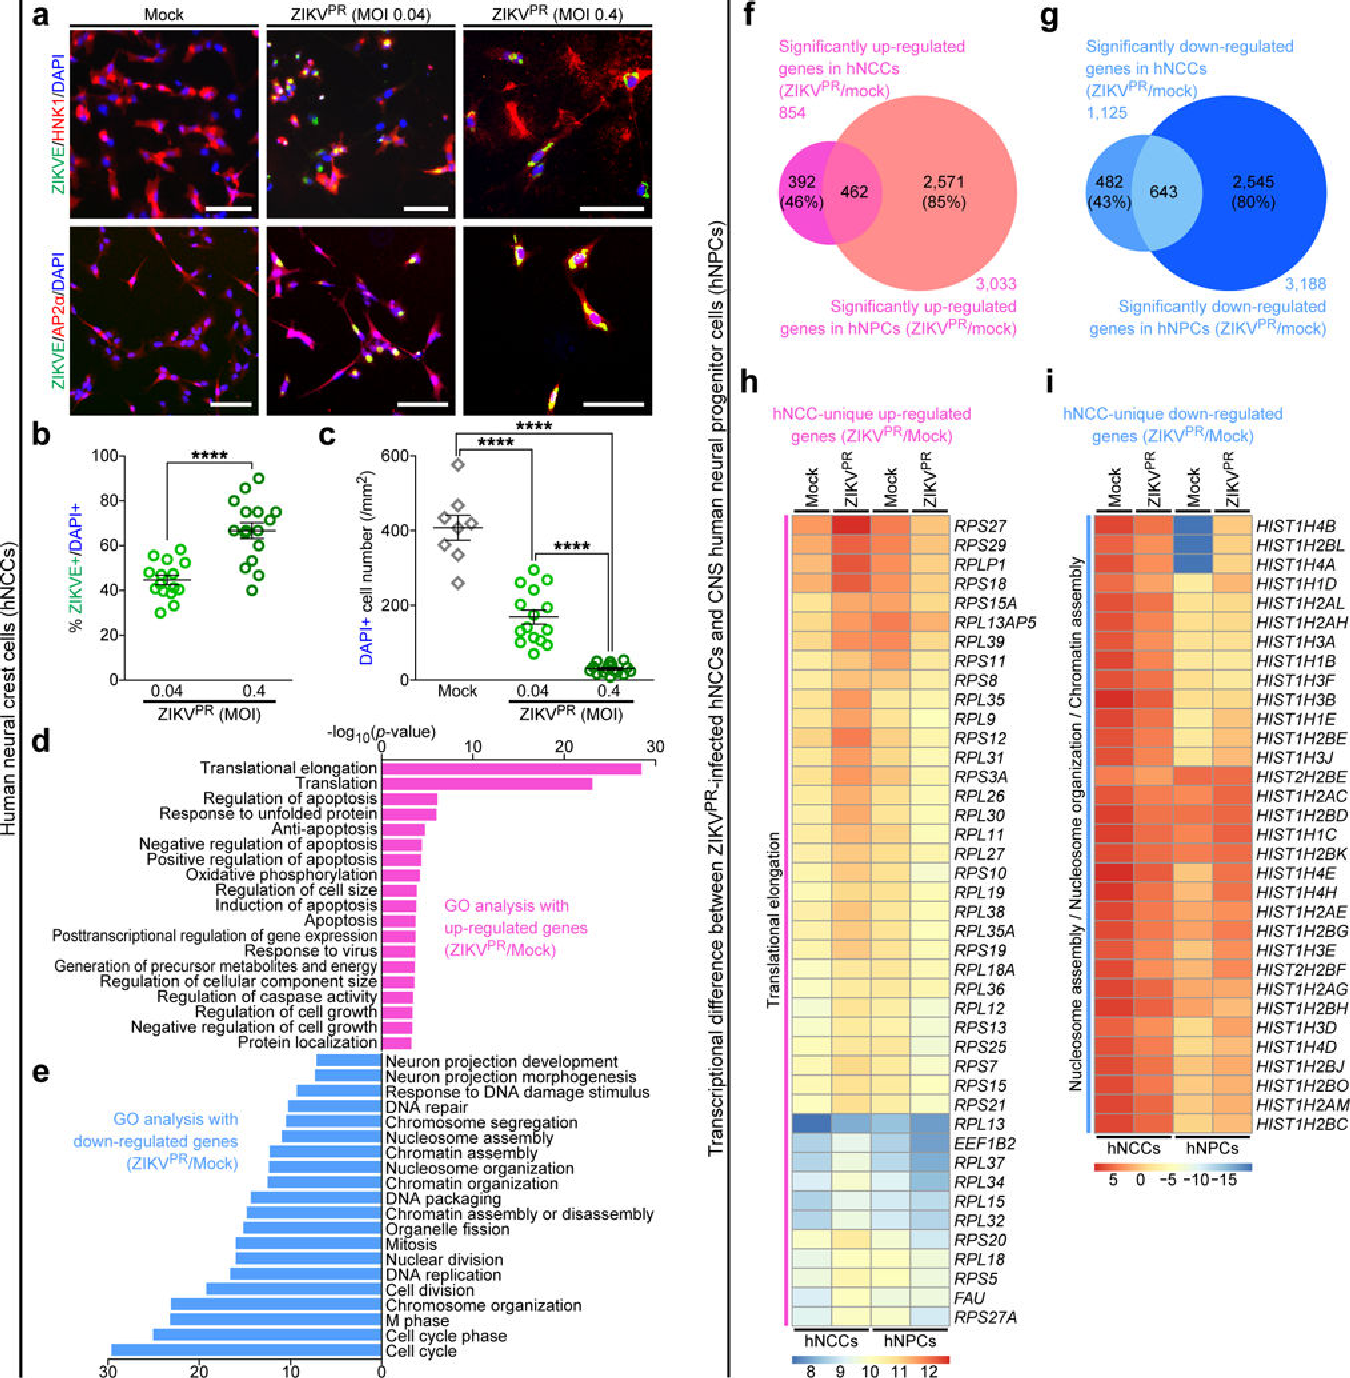 Figure 2. ZIKV efficiently infects human pluripotent stem cell-derived neural crest cells. hNCCs were treated with ZIKVPR (MOI of 0.04 or 0.4) or mock for 65 h. (a) Representative images of hNCCs immunostained with the indicated antibodies. Scale bars, 100 μm. (b) Quantification of the percentage of ZIKVE+ hNCCs, relative to the number of DAPI+ cells (n = 15 for MOI of 0.04, n = 16 for MOI of 0.4; ****P < 0.0001; unpaired Student's t-test). (c) The number of DAPI+ hNCCs per mm2 (n = 8 for Mock, n = 15 for MOI of 0.04, n = 16 for MOI of 0.4; ****P < 0.0001; unpaired Student's t-test). All error bars represent mean ± s.e.m. The number of cell cultures is indicated for each group (n). (d,e) Genes with significant